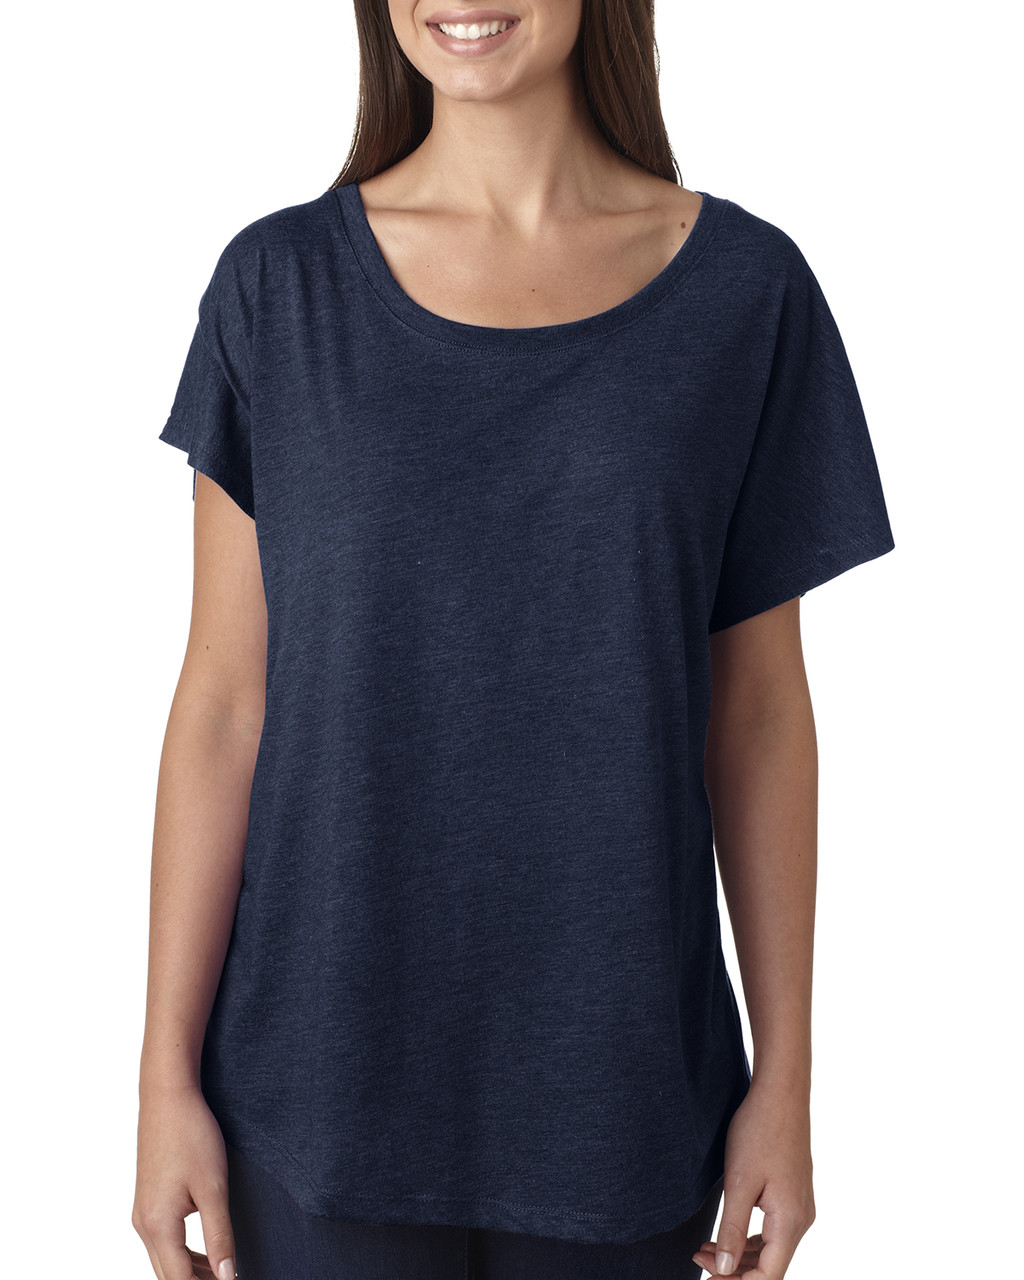 Vintage Navy - 6760 Next Level Ladies' Triblend Dolman Shirt | BlankClothing.ca